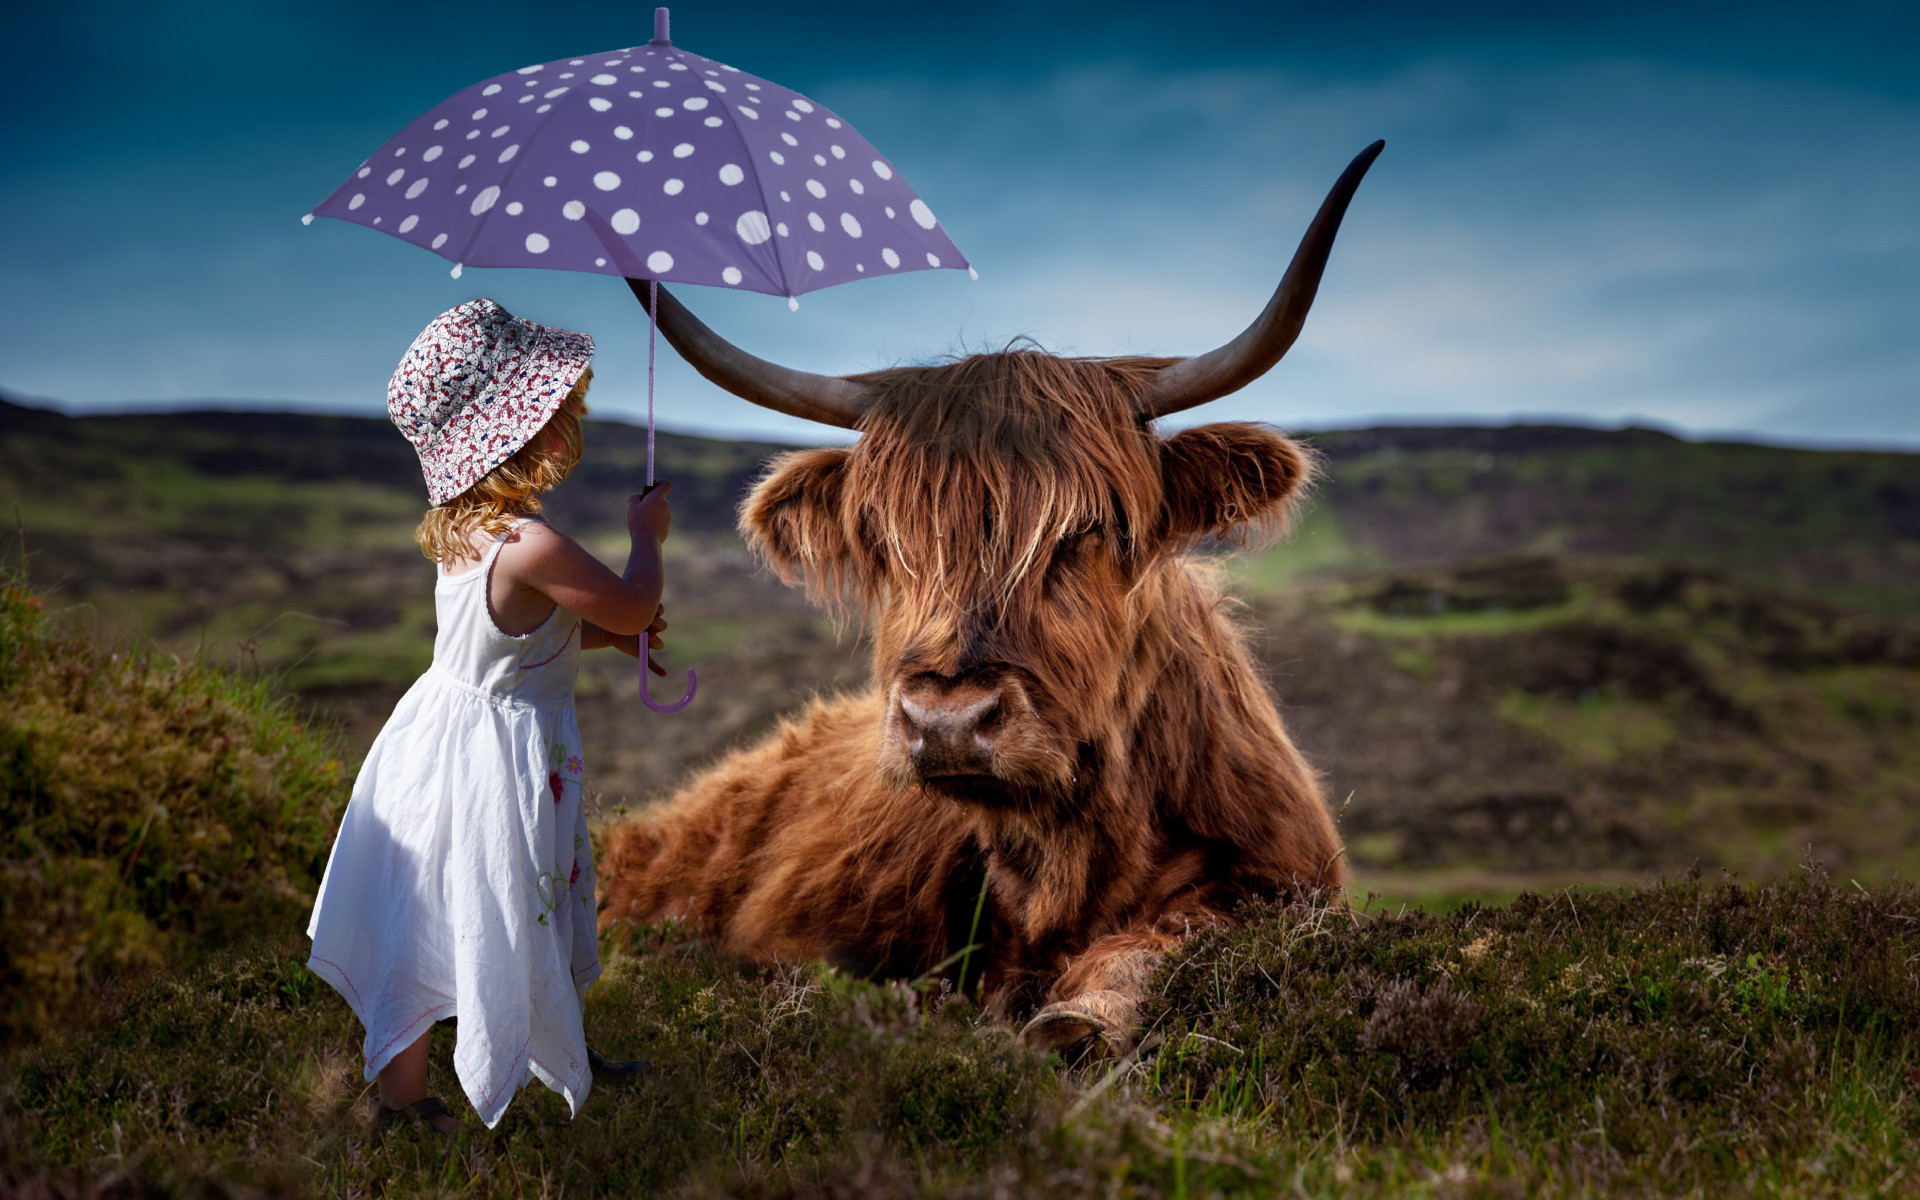 Child with the umbrella and the funny cow wallpaper 1920x1200